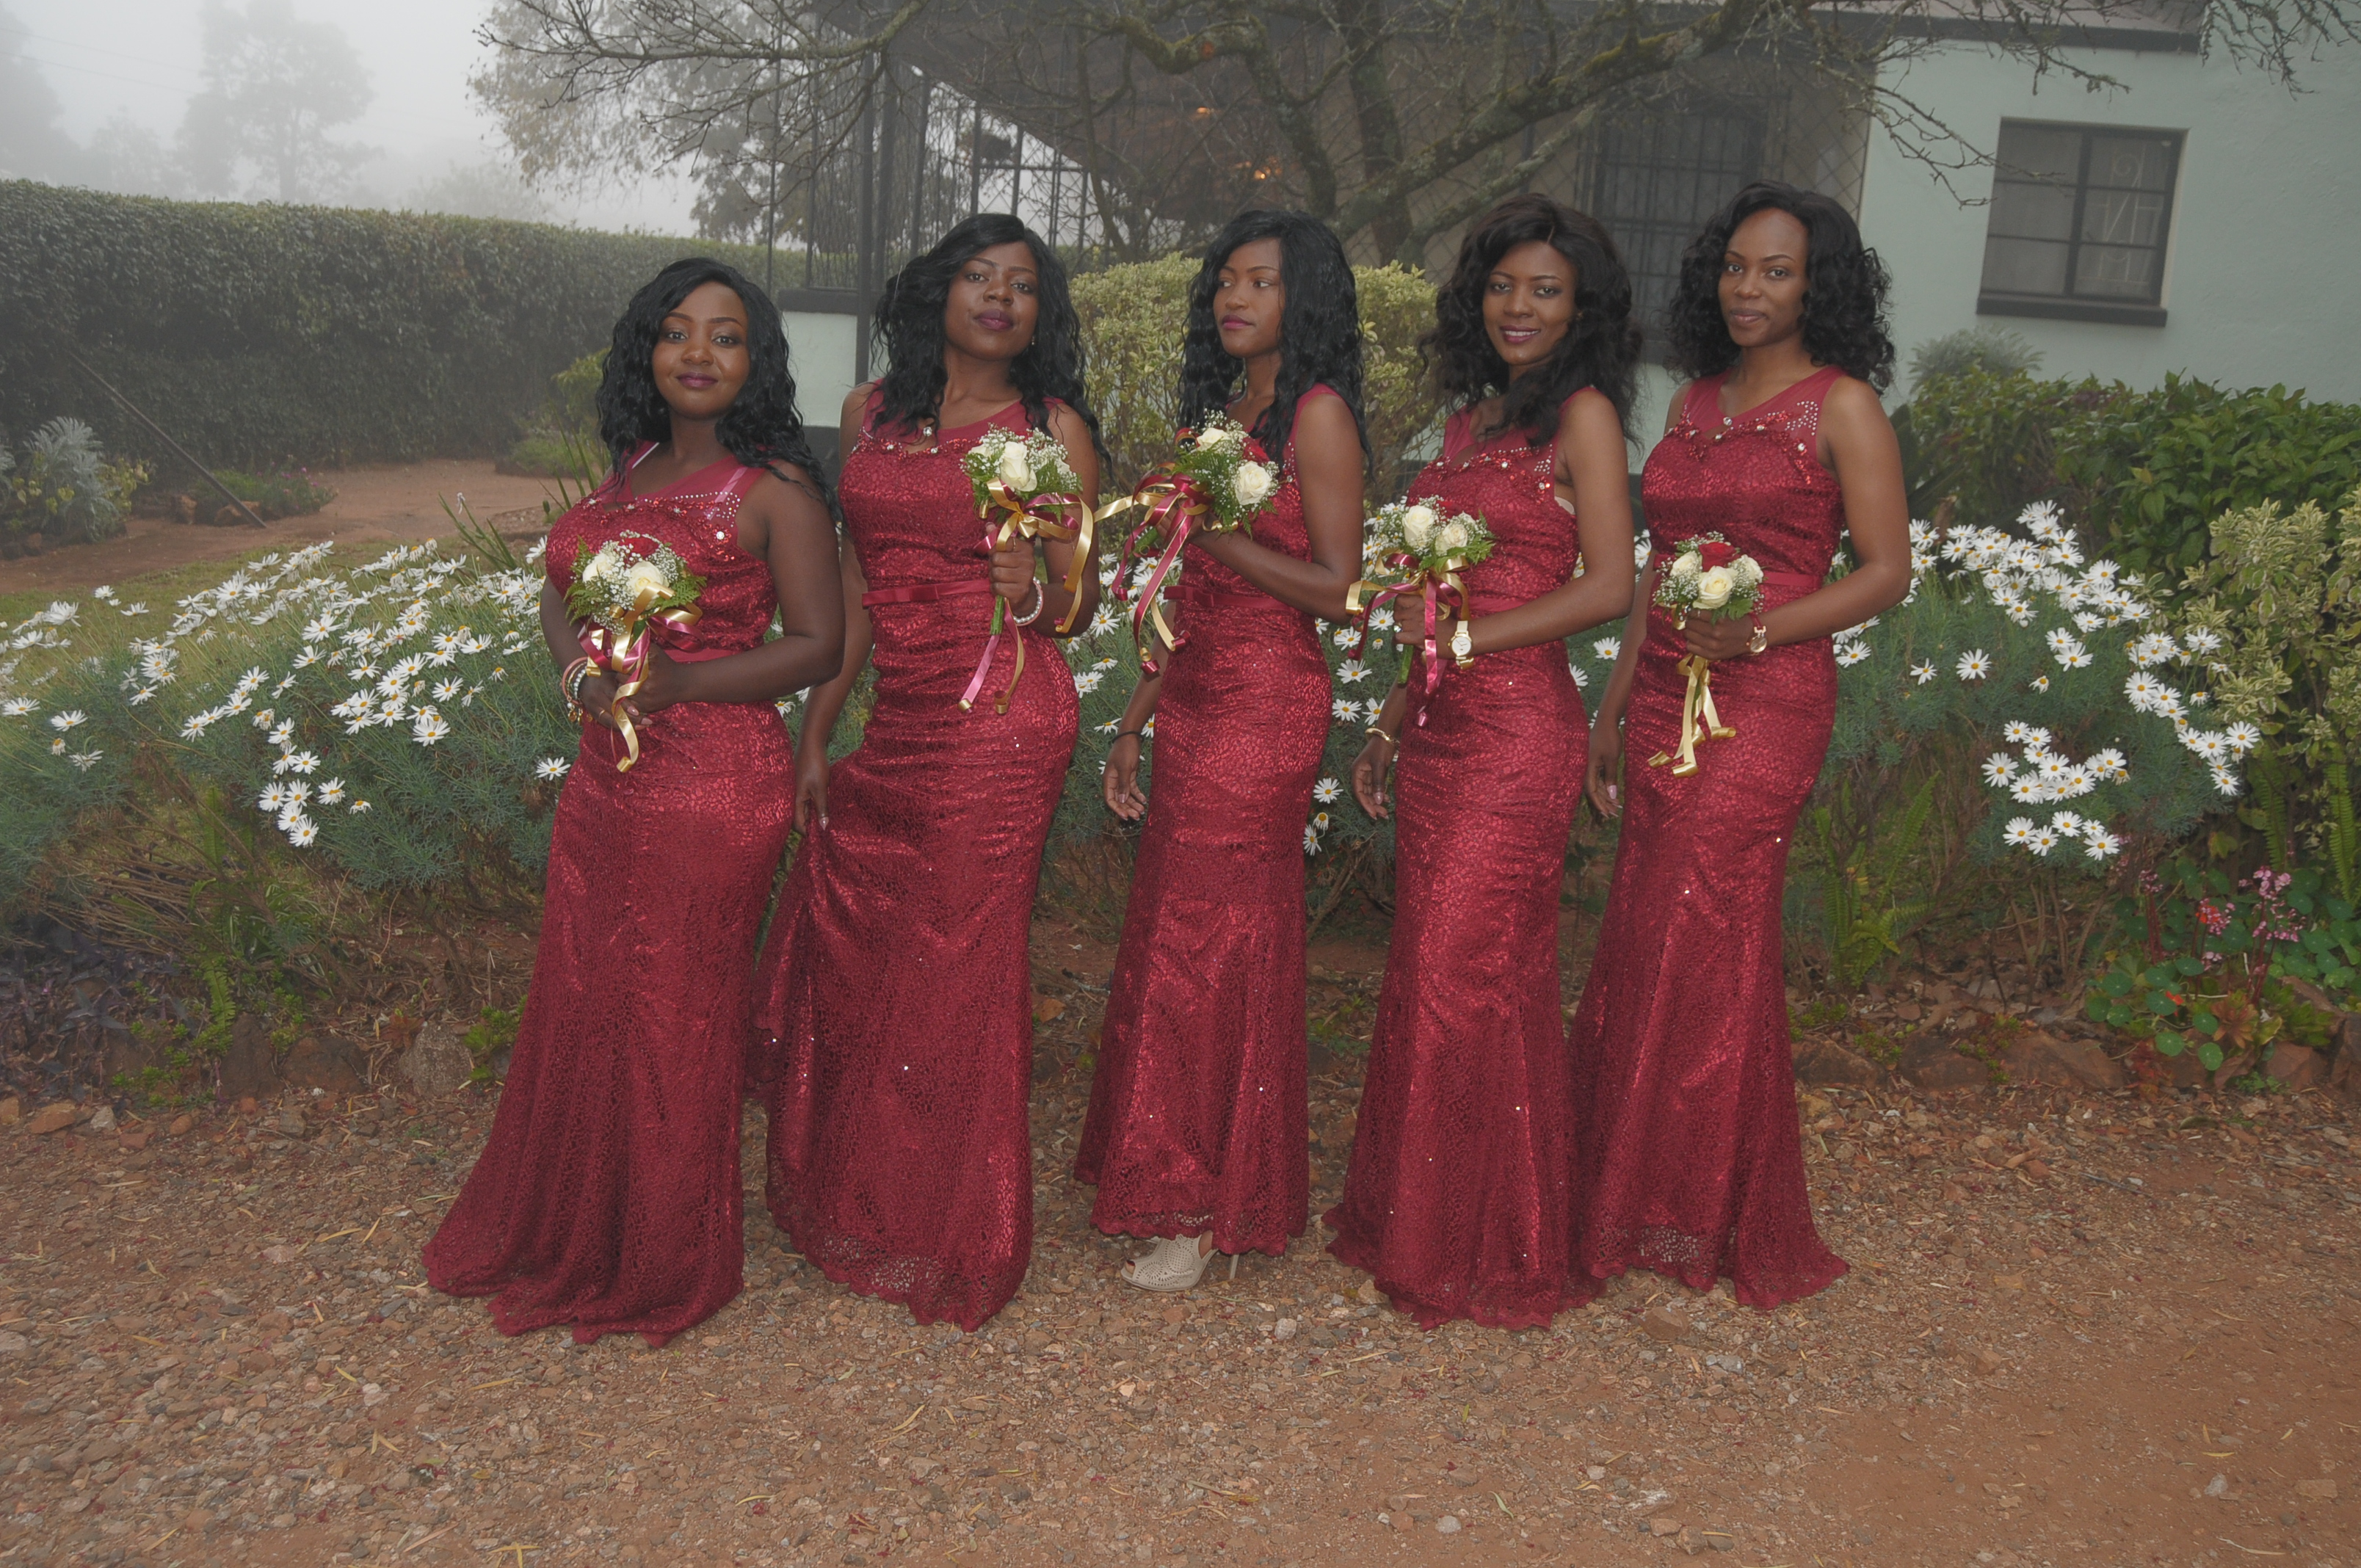 Takudzwa Jacobs and Alphinah Makotose's bridal team